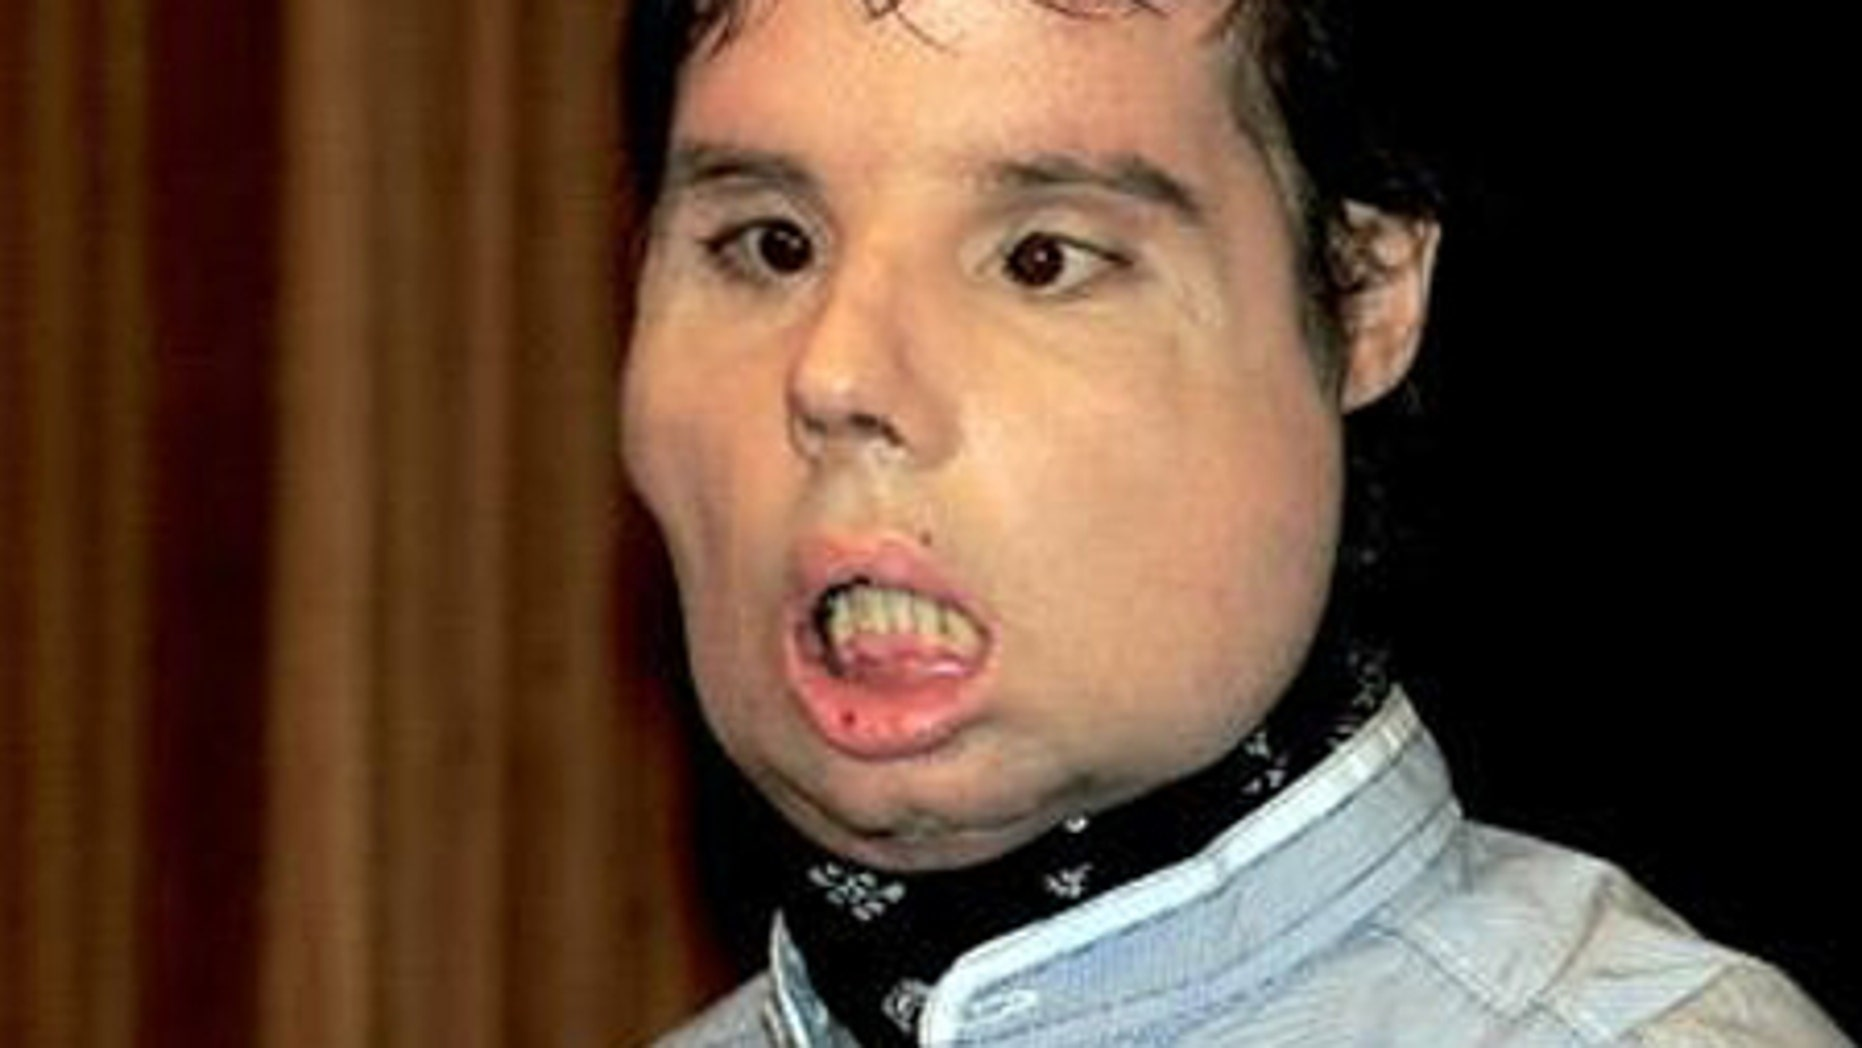 images World's first full face transplant